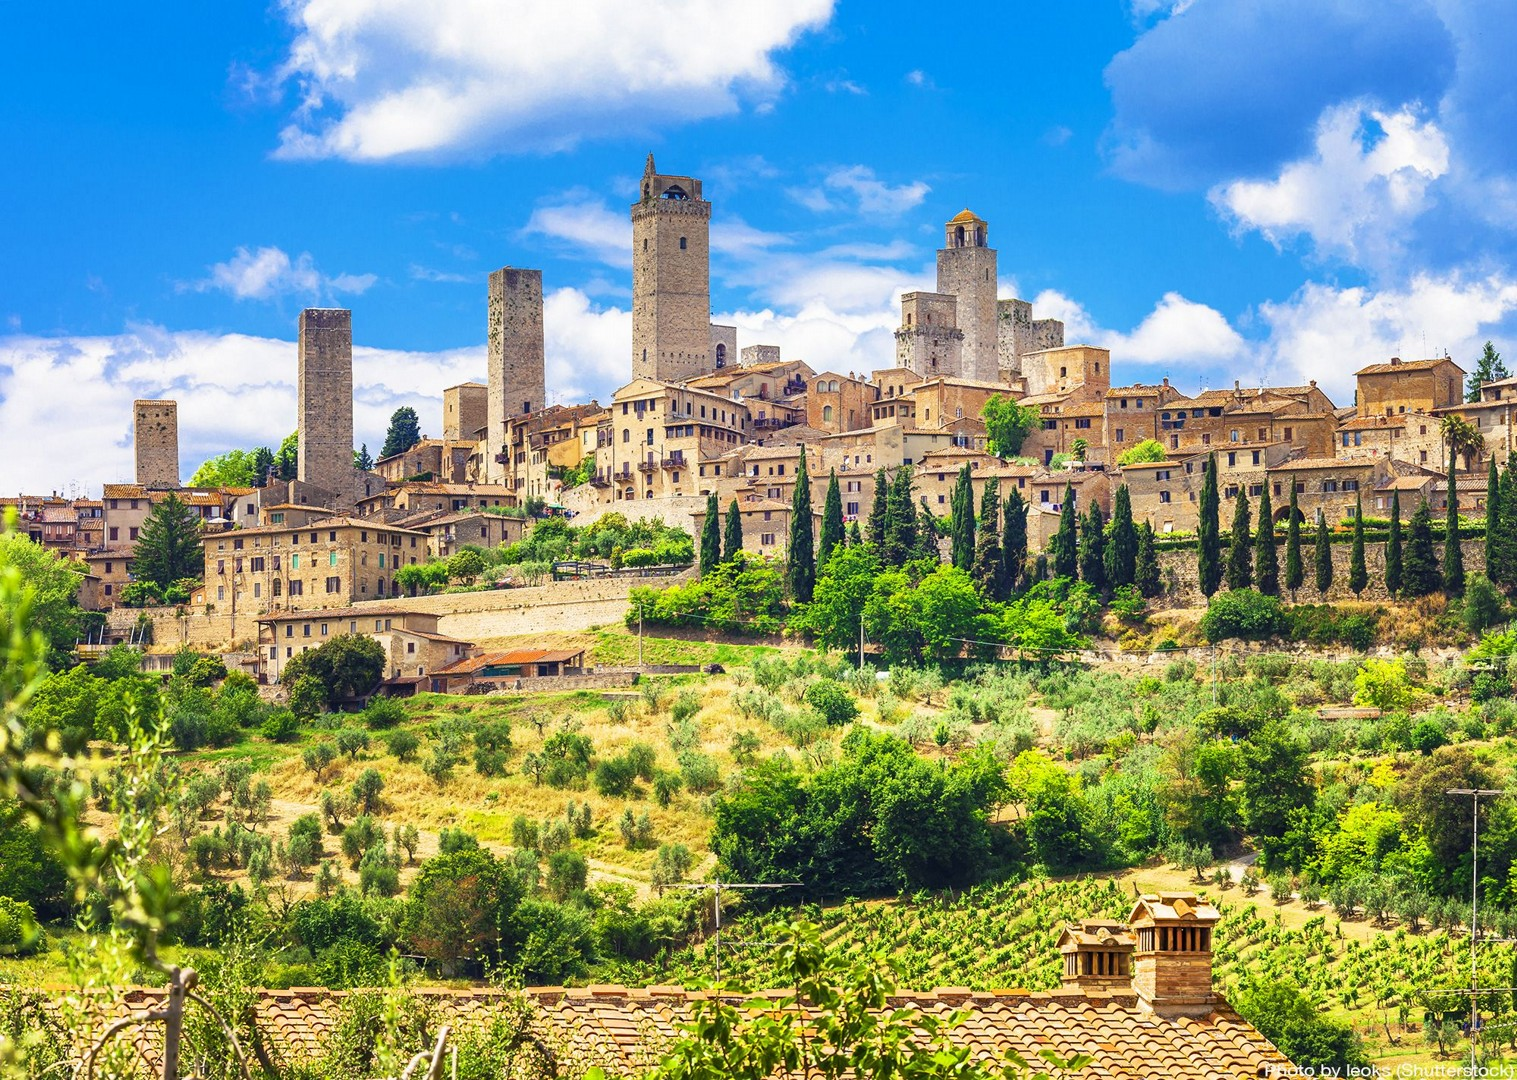 san-giminiano-italy-tuscany-leisure-cycling-culture.jpg - Italy - Classic Tuscany - Self-Guided Leisure Cycling Holiday - Italia Leisure and Family Cycling